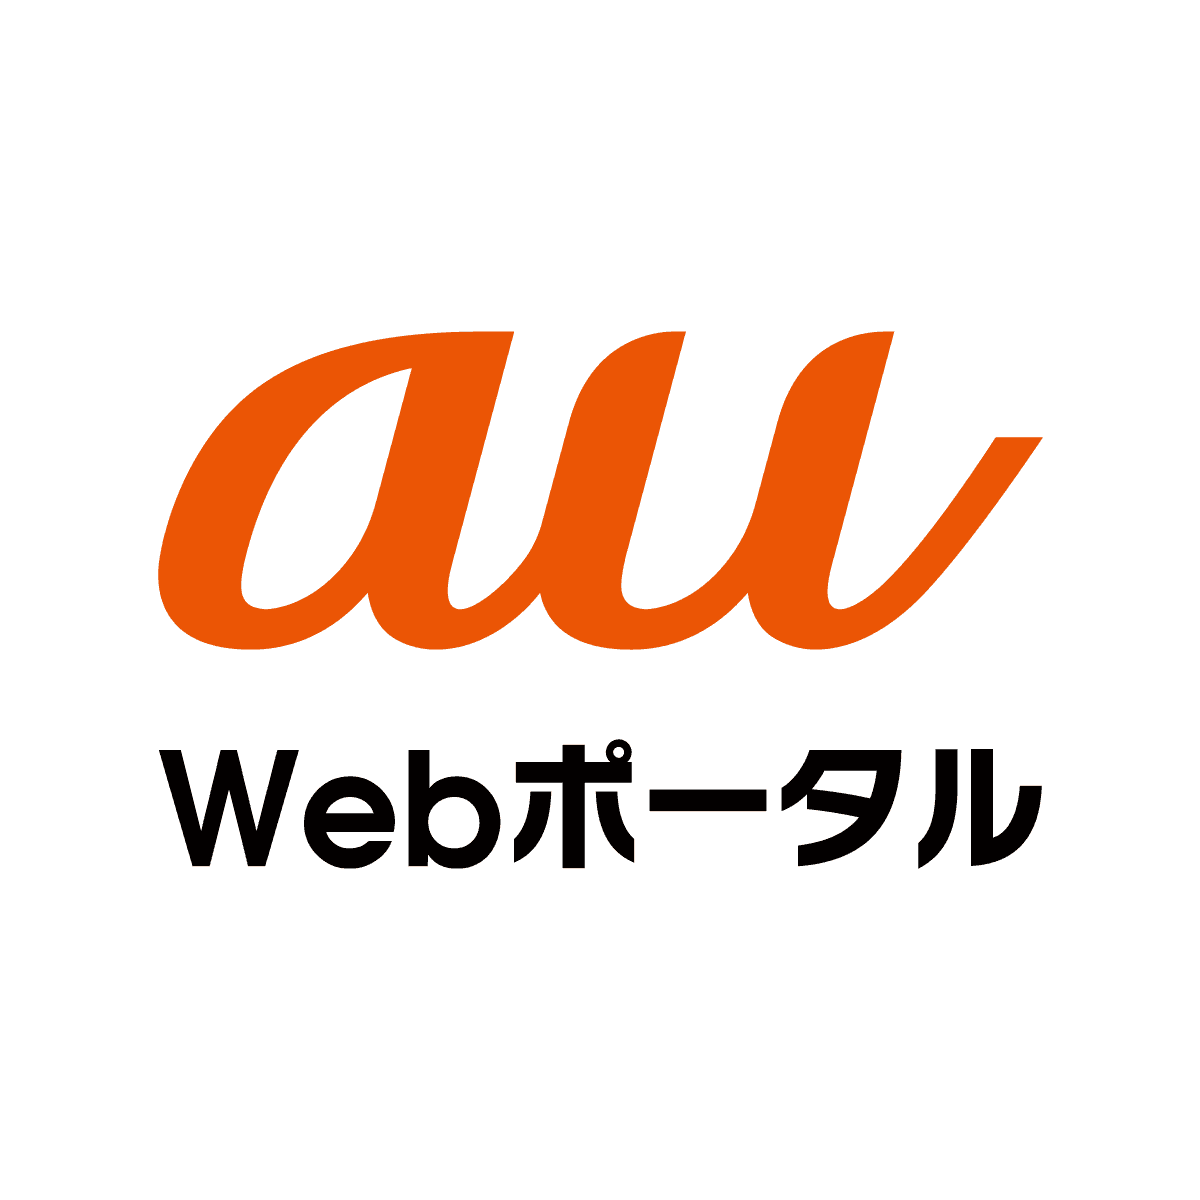 View au Webポータル|最新の国内外ニュースをリアルタイムに配信 outages and uptime